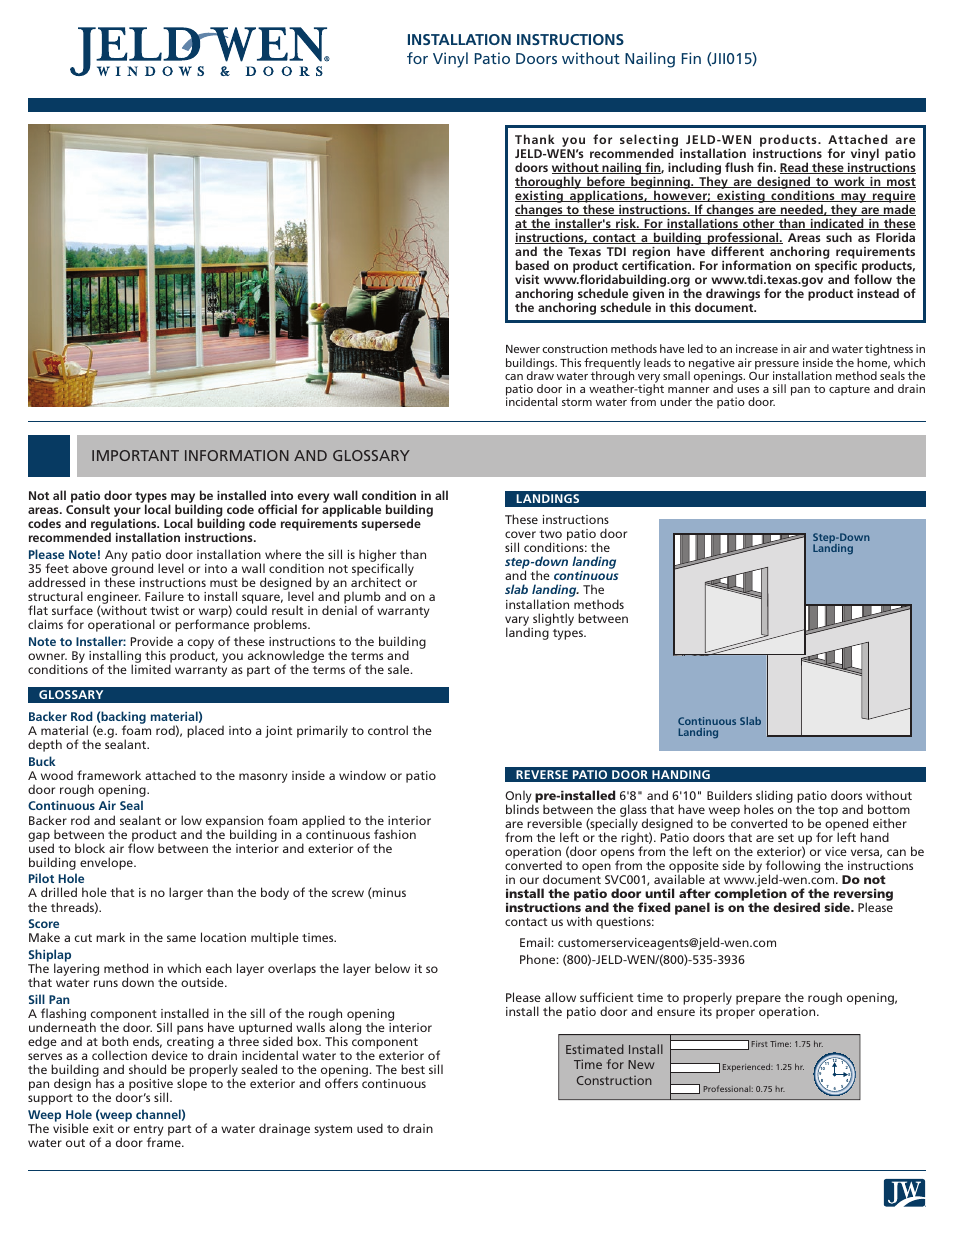 JELD WEN JII015 Vinyl Patio Doors Without Nailing Fin User Manual | 9 Pages